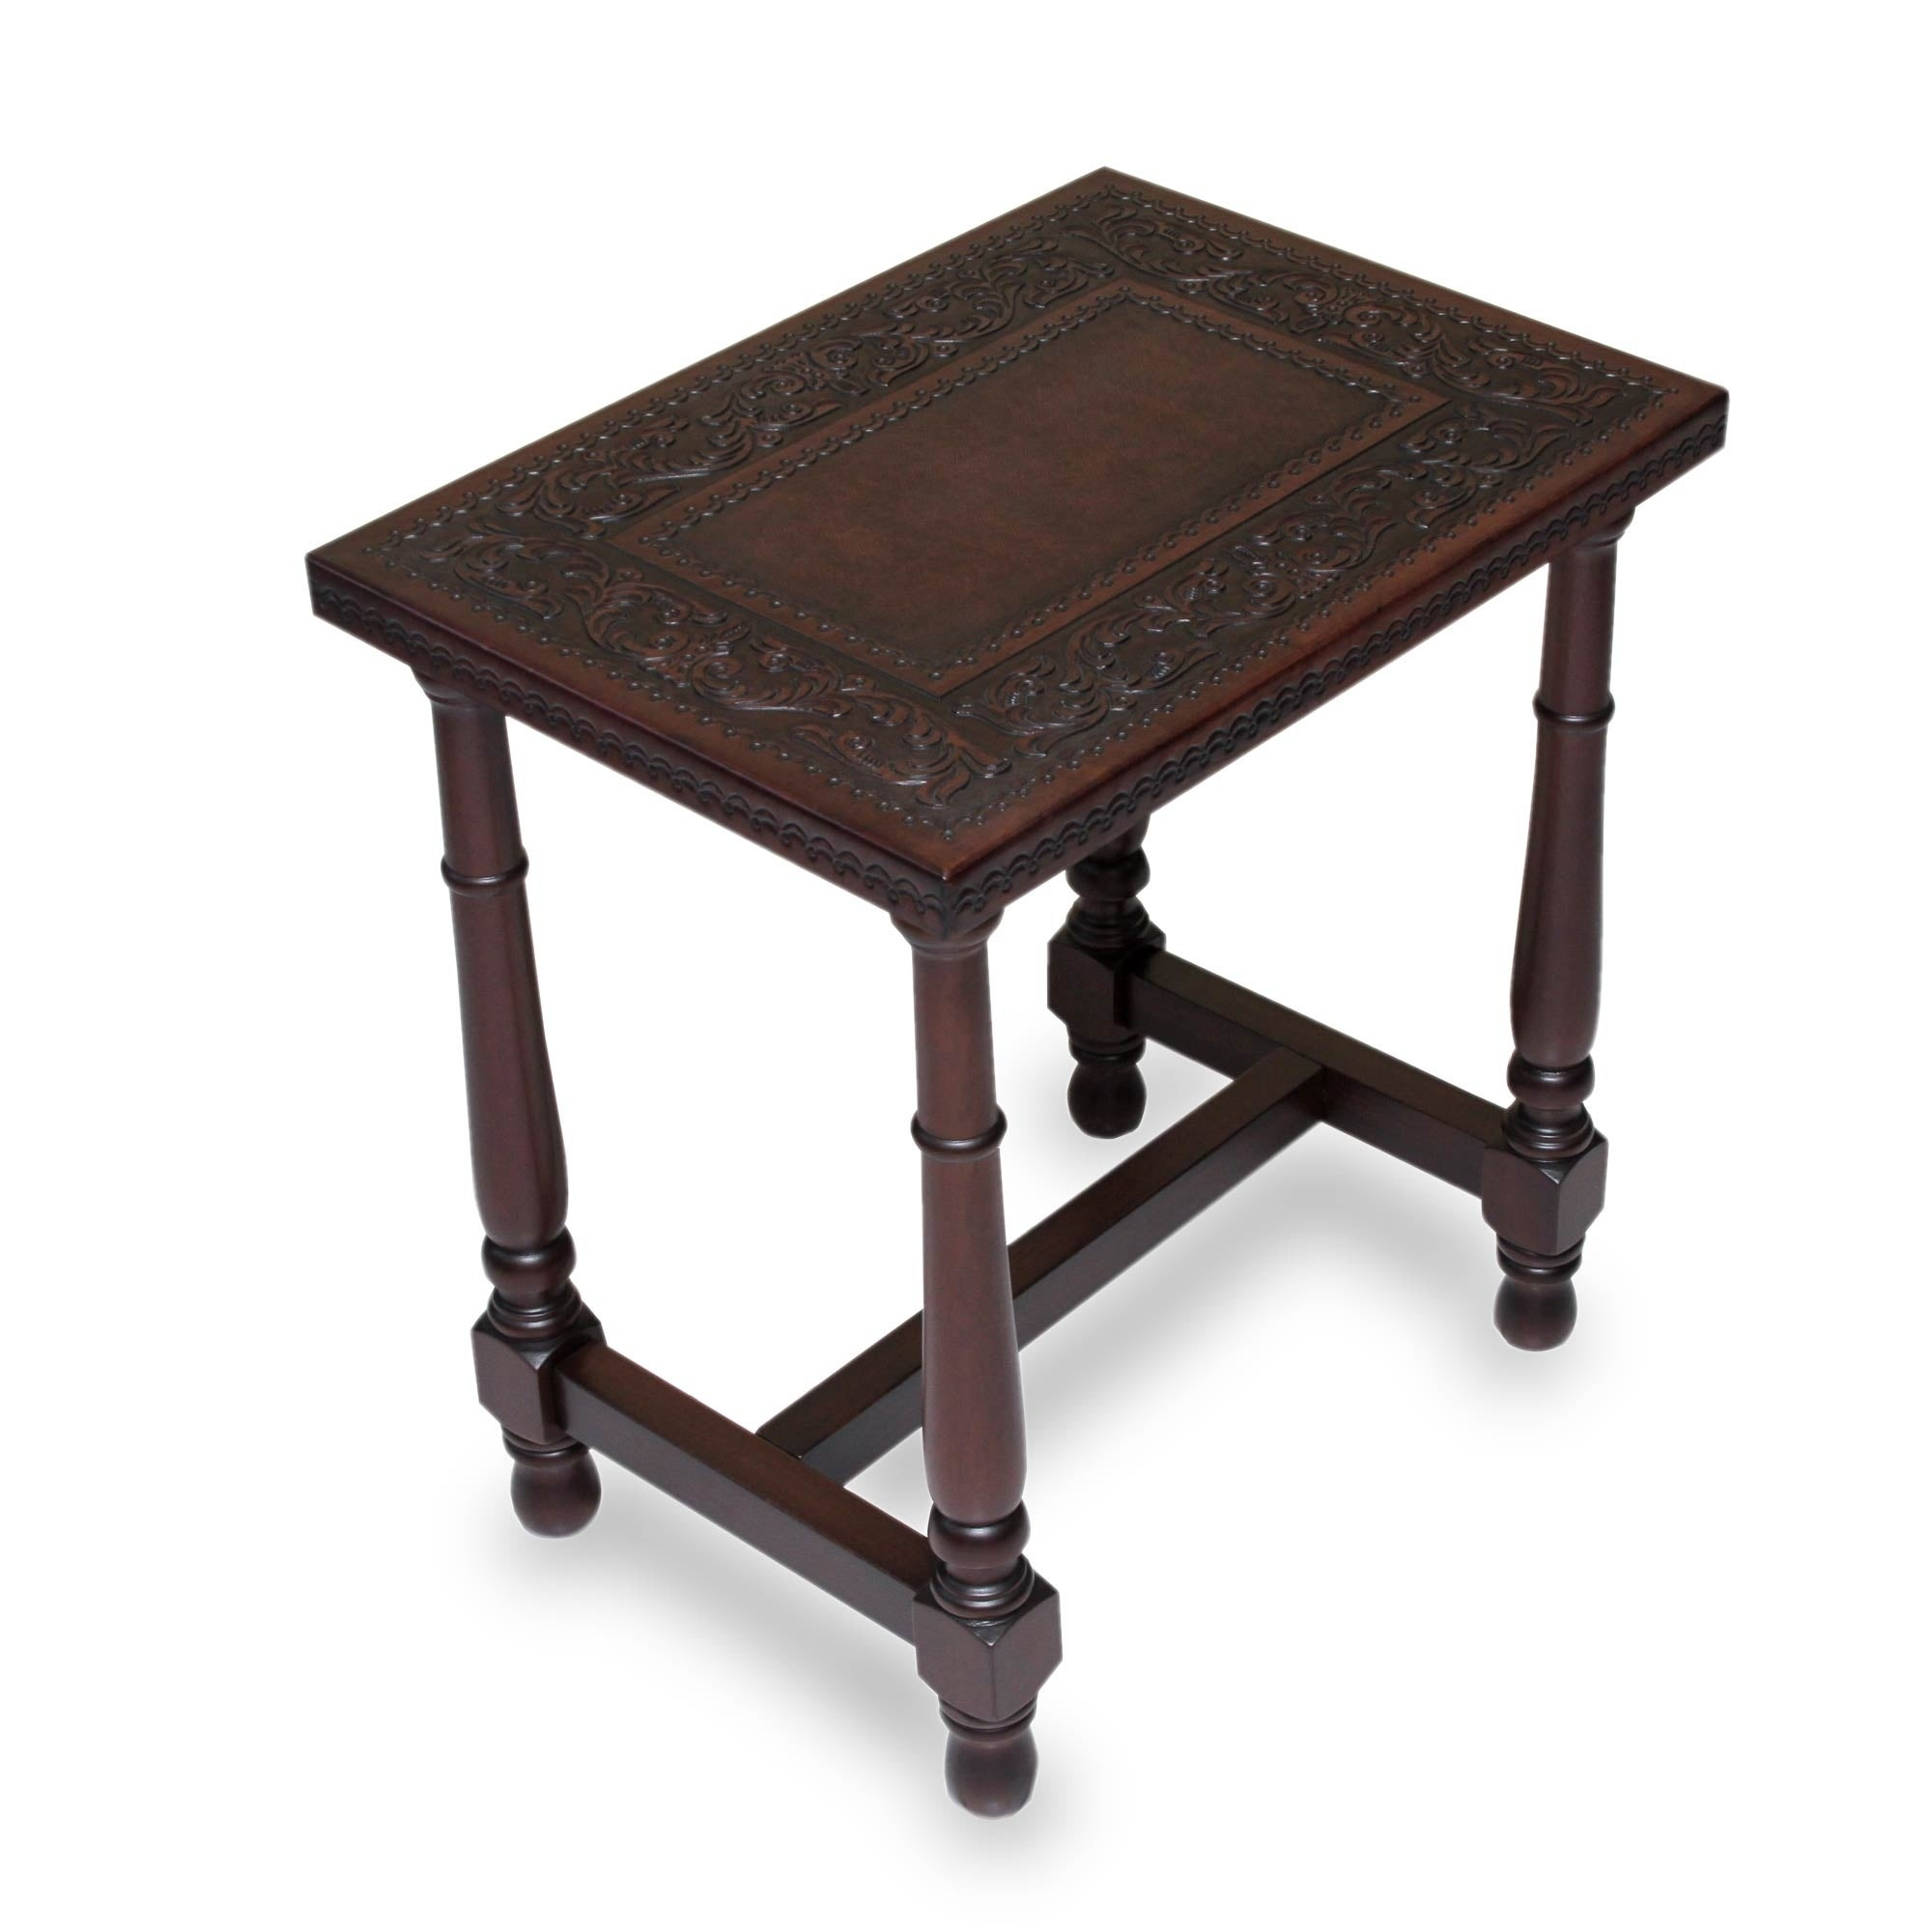 Shop handmade rich brown colonial foliage mohena wood leather furniture home decor leather side end table peru on sale free shipping today